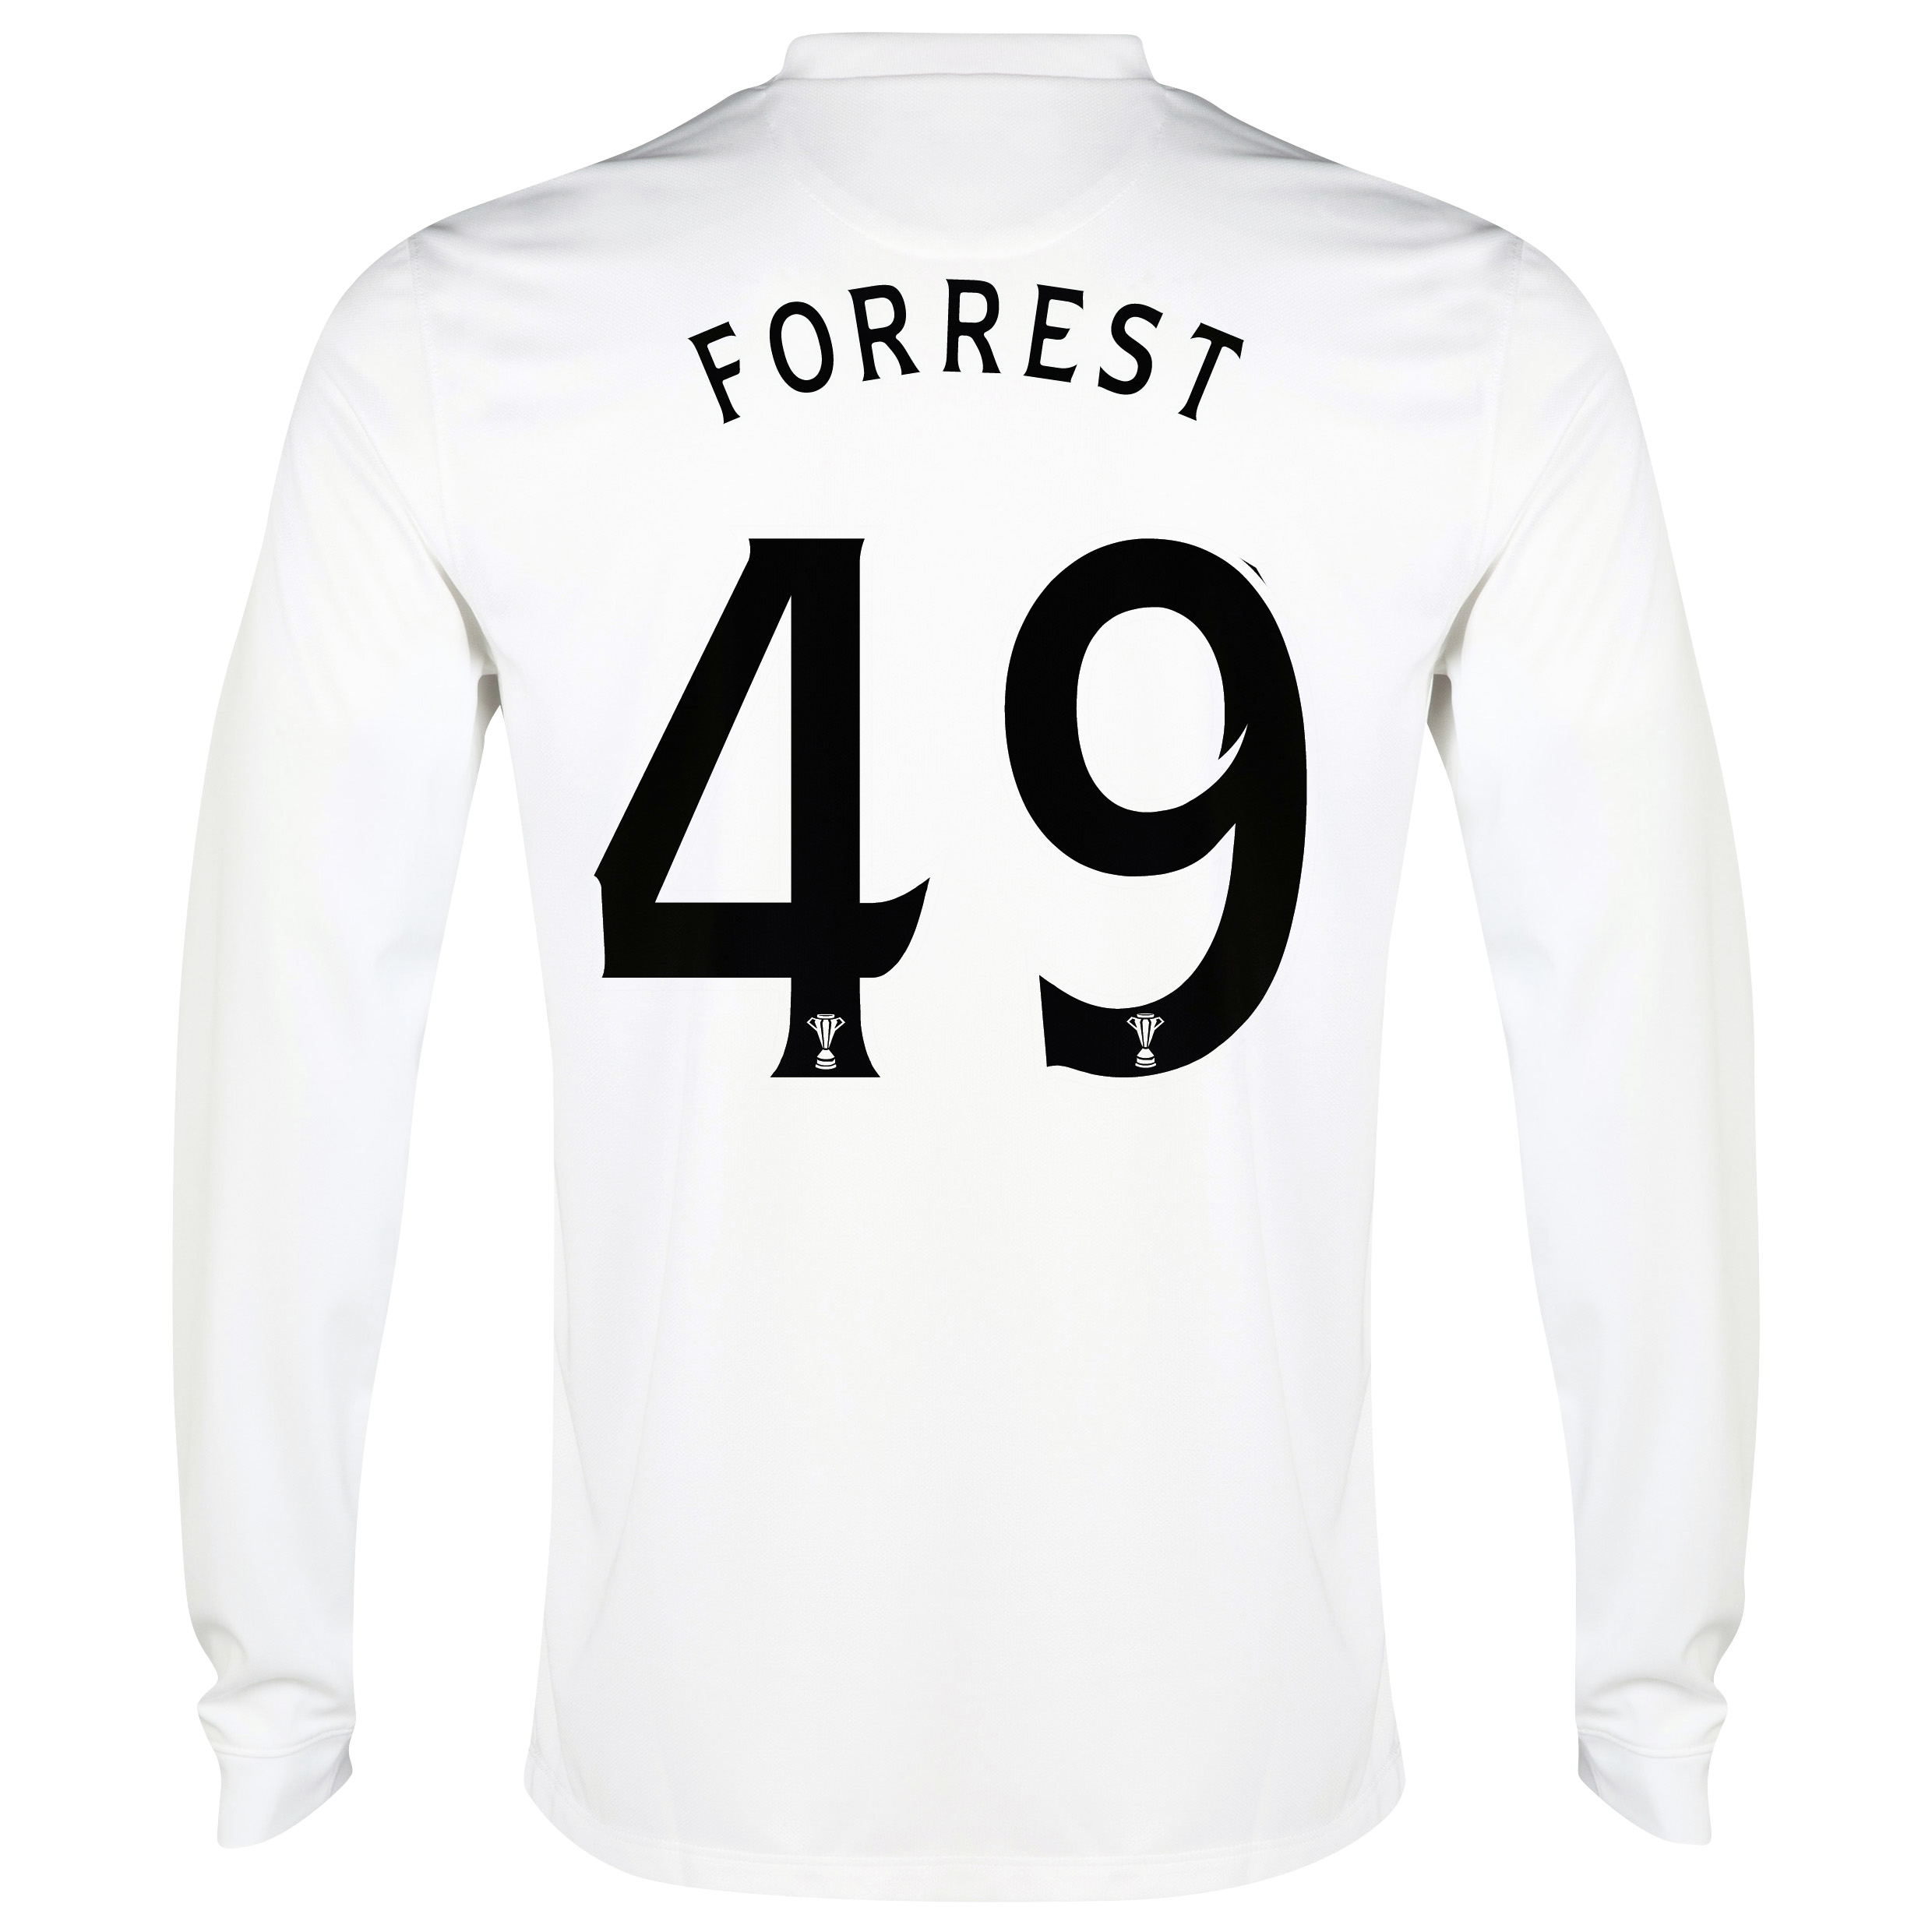 Celtic 3rd Shirt 2014/15 - Long Sleeved - With Sponsor White with Forrest 49 printing